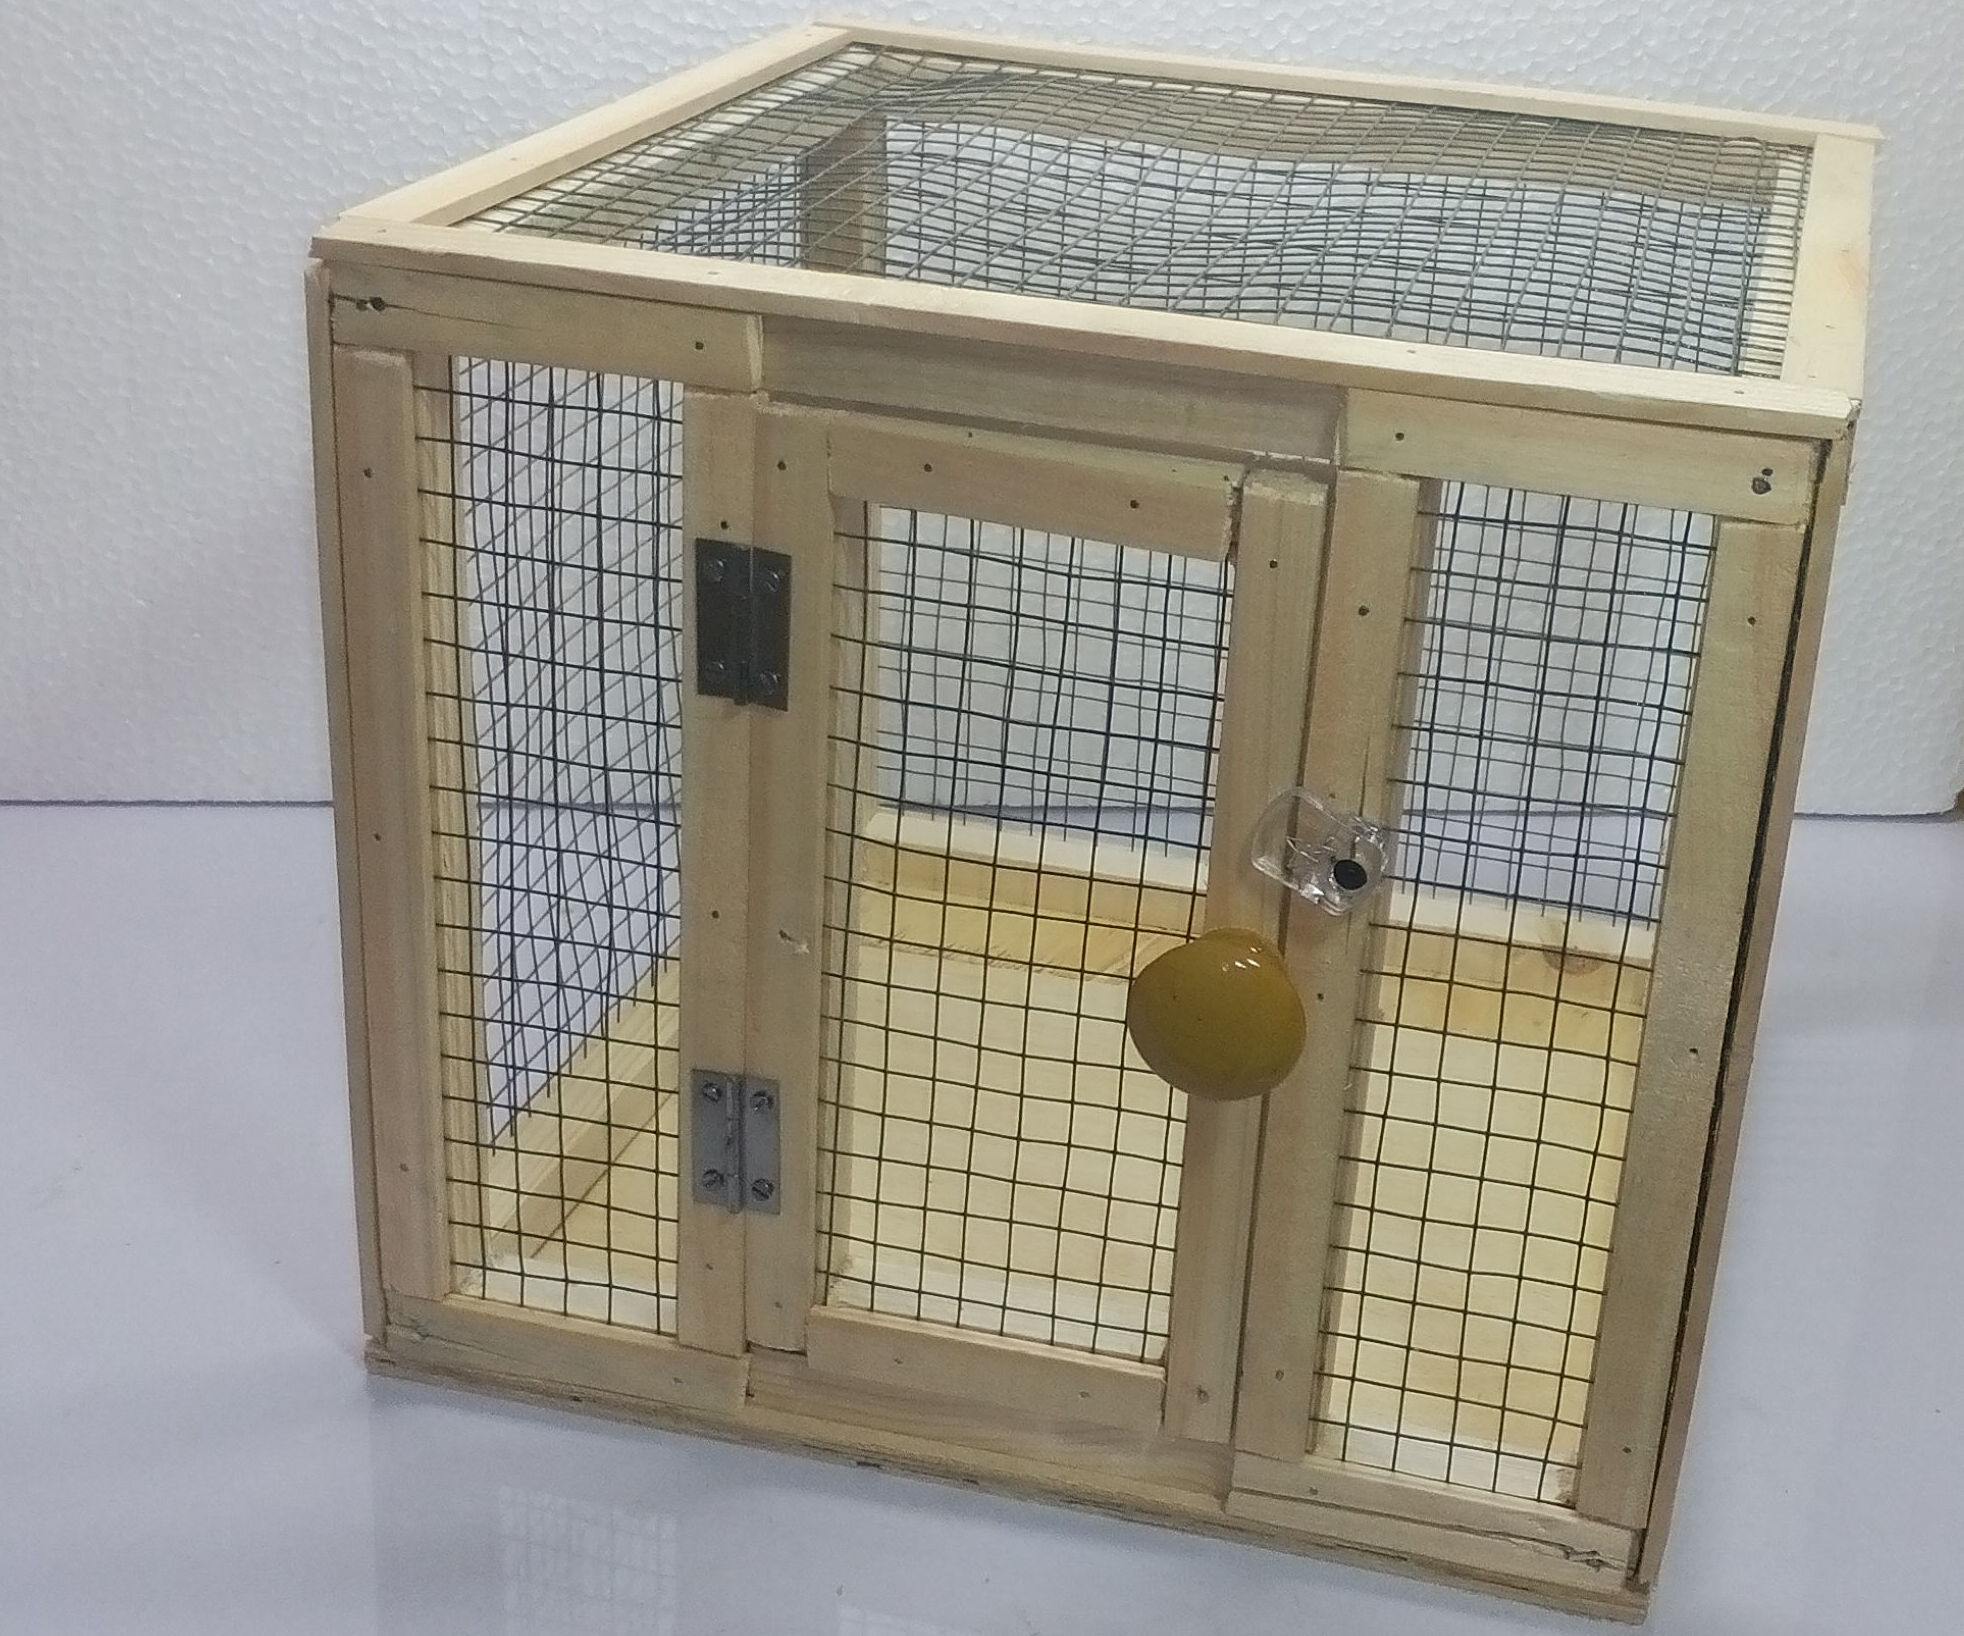 How to Make a Bird Cage